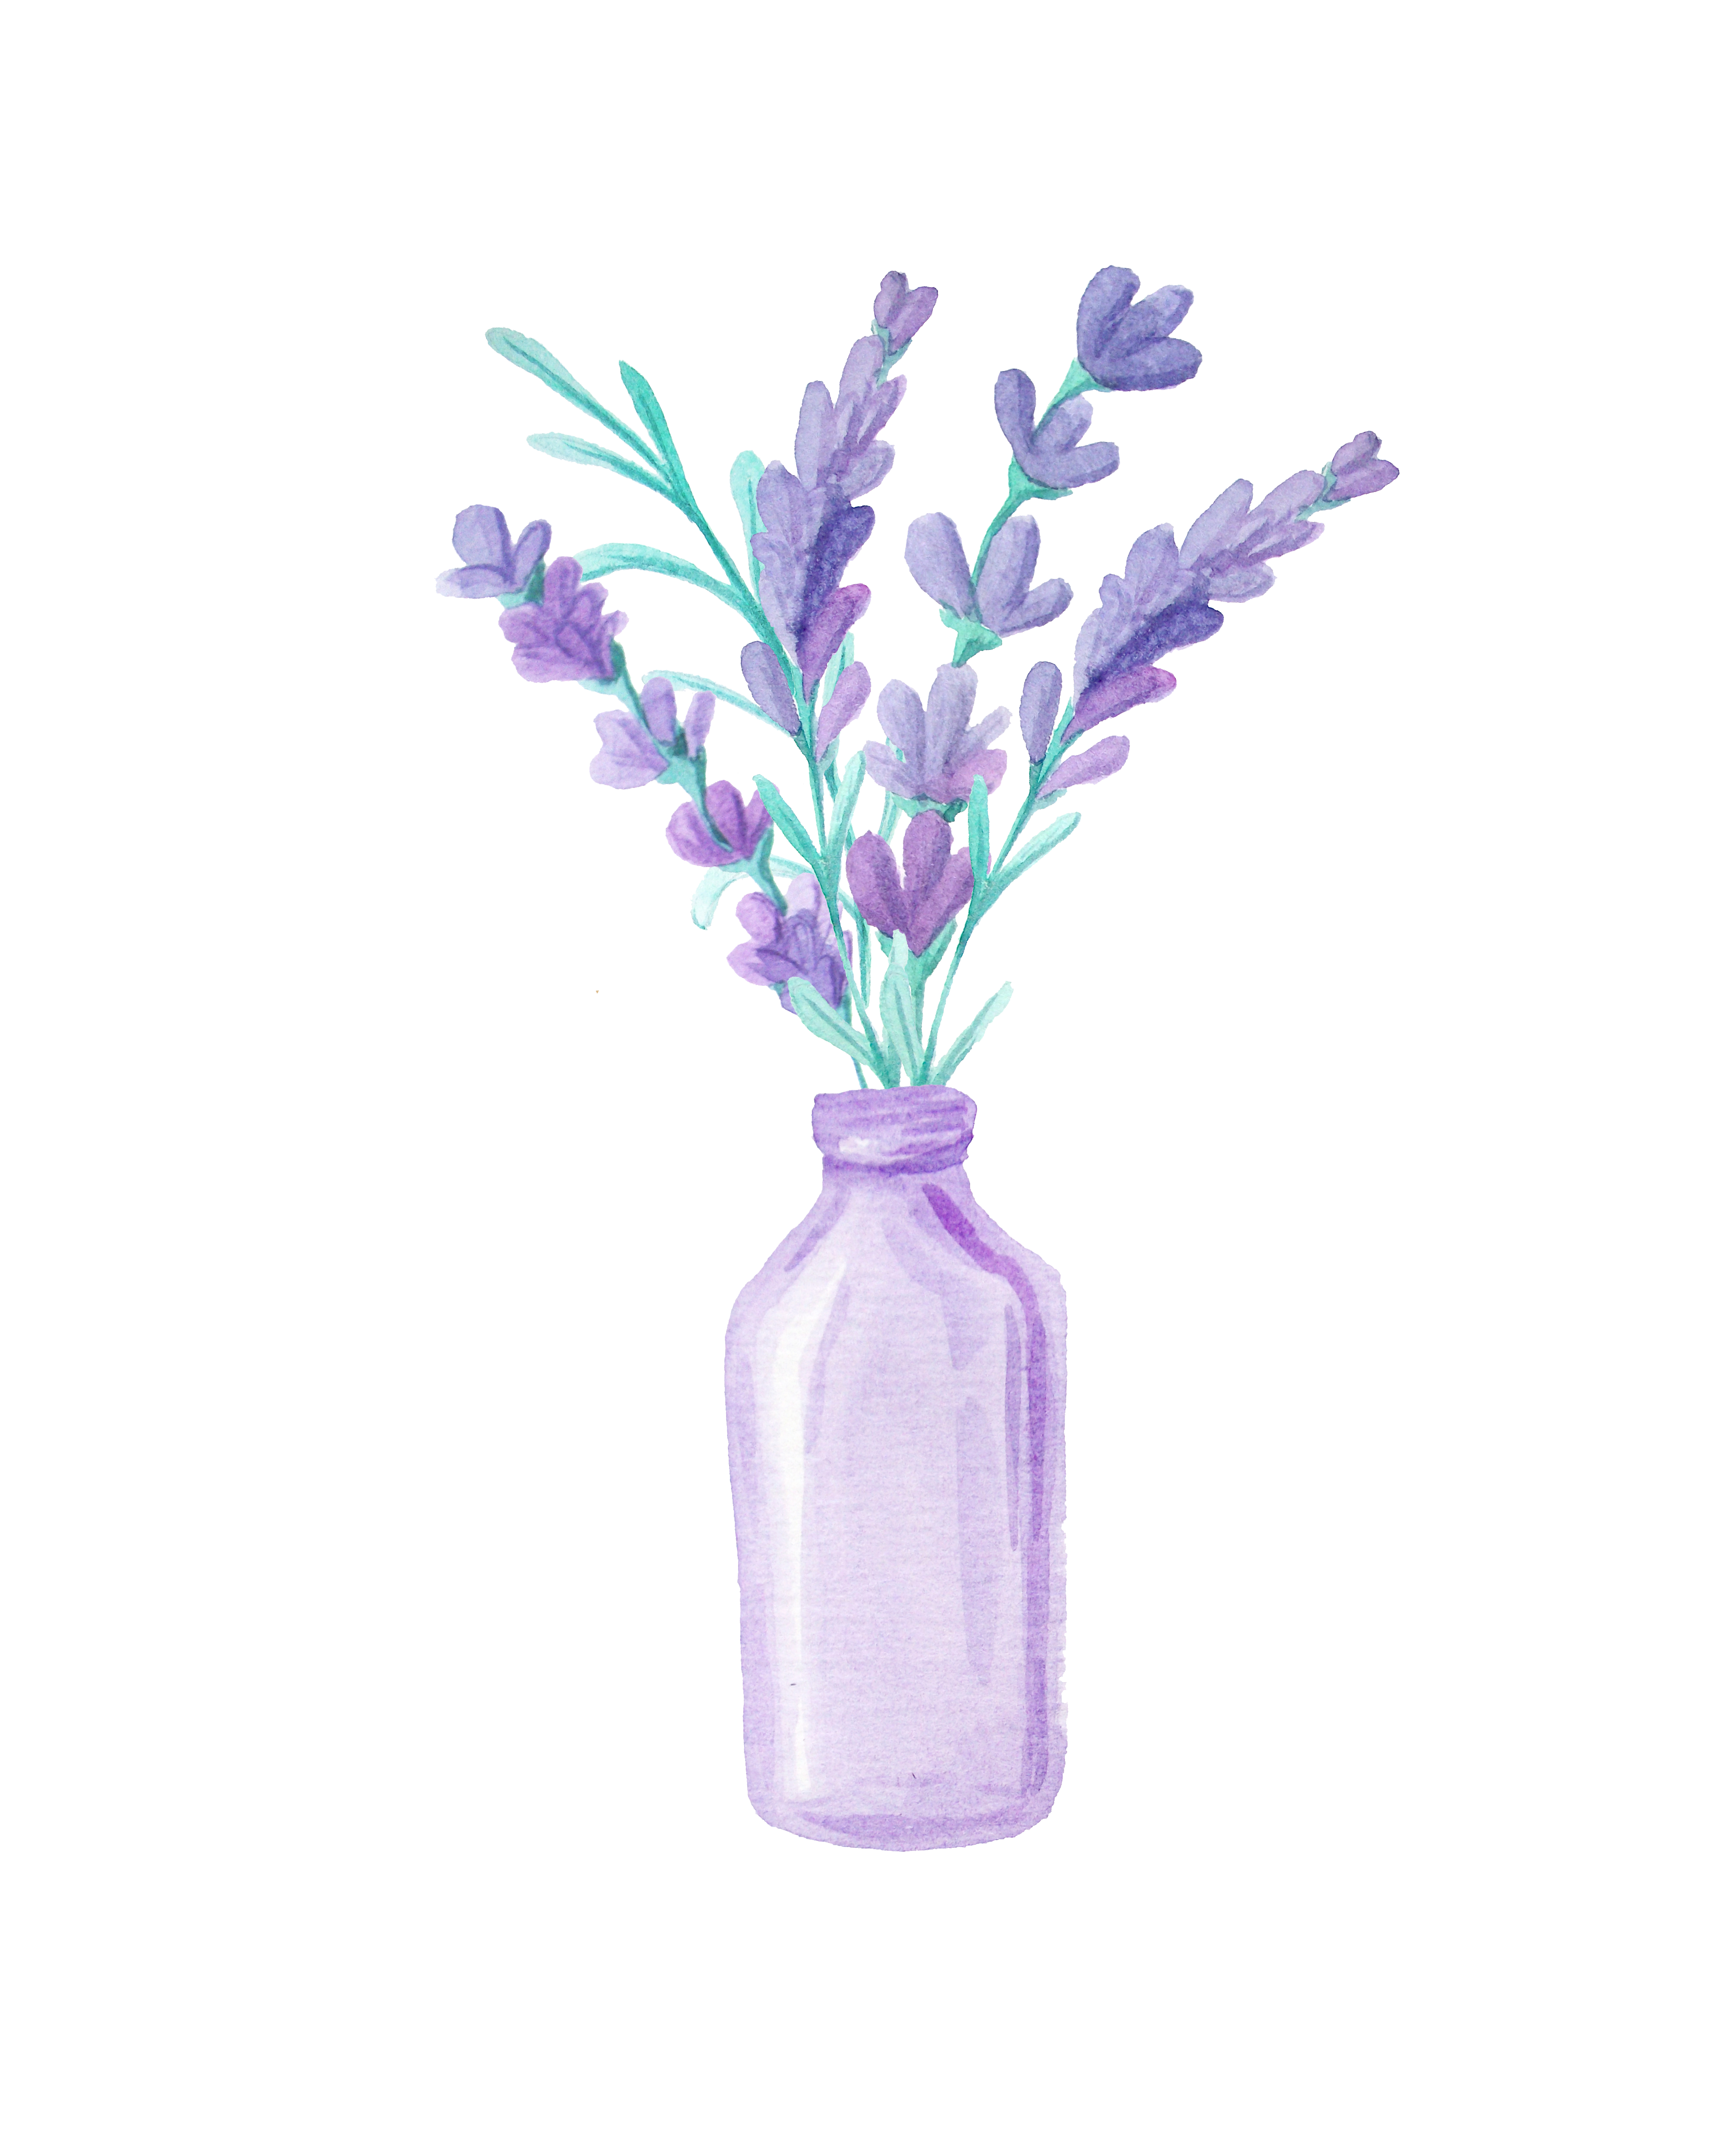 Lavender drawing png. Beautiful transprent free download